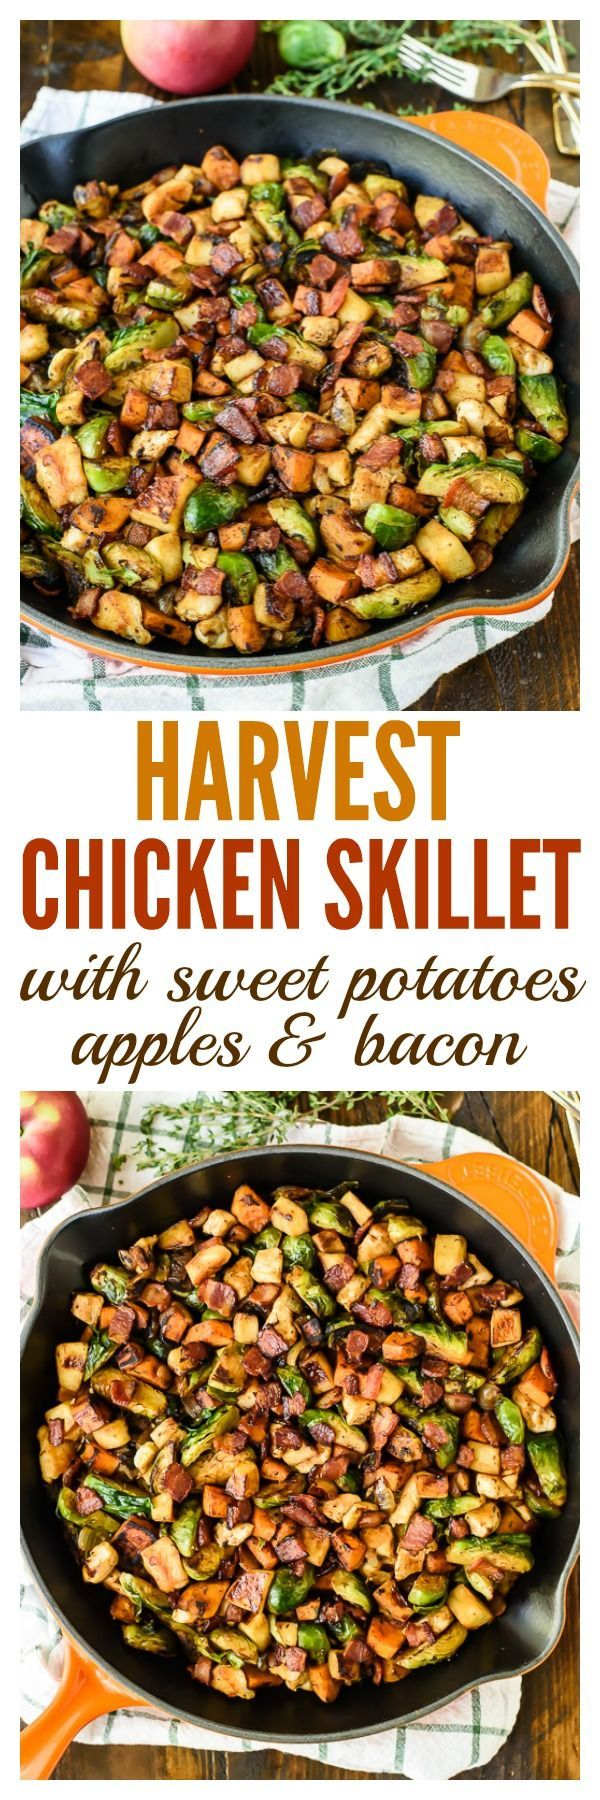 Harvest Chicken Skillet with Sweet Potatoes, Apples, Brussels Sprouts and Bacon…